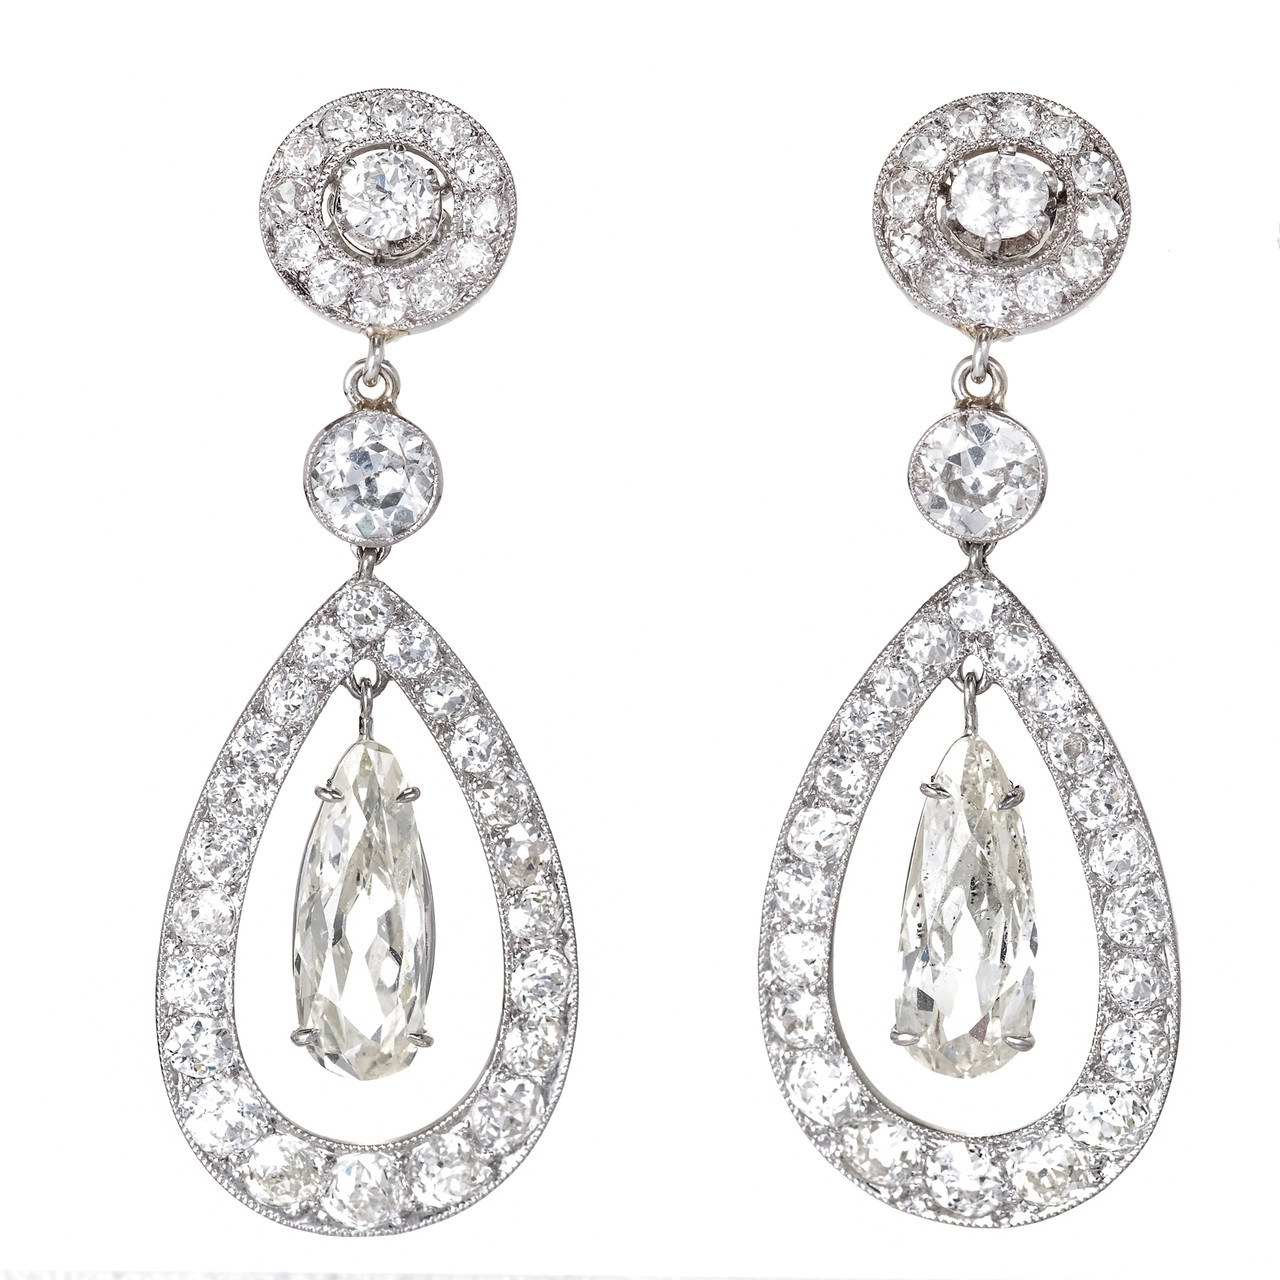 e5fda9831aef0 Cartier Paris Diamond Platinum Dangle Earrings c1900 ...